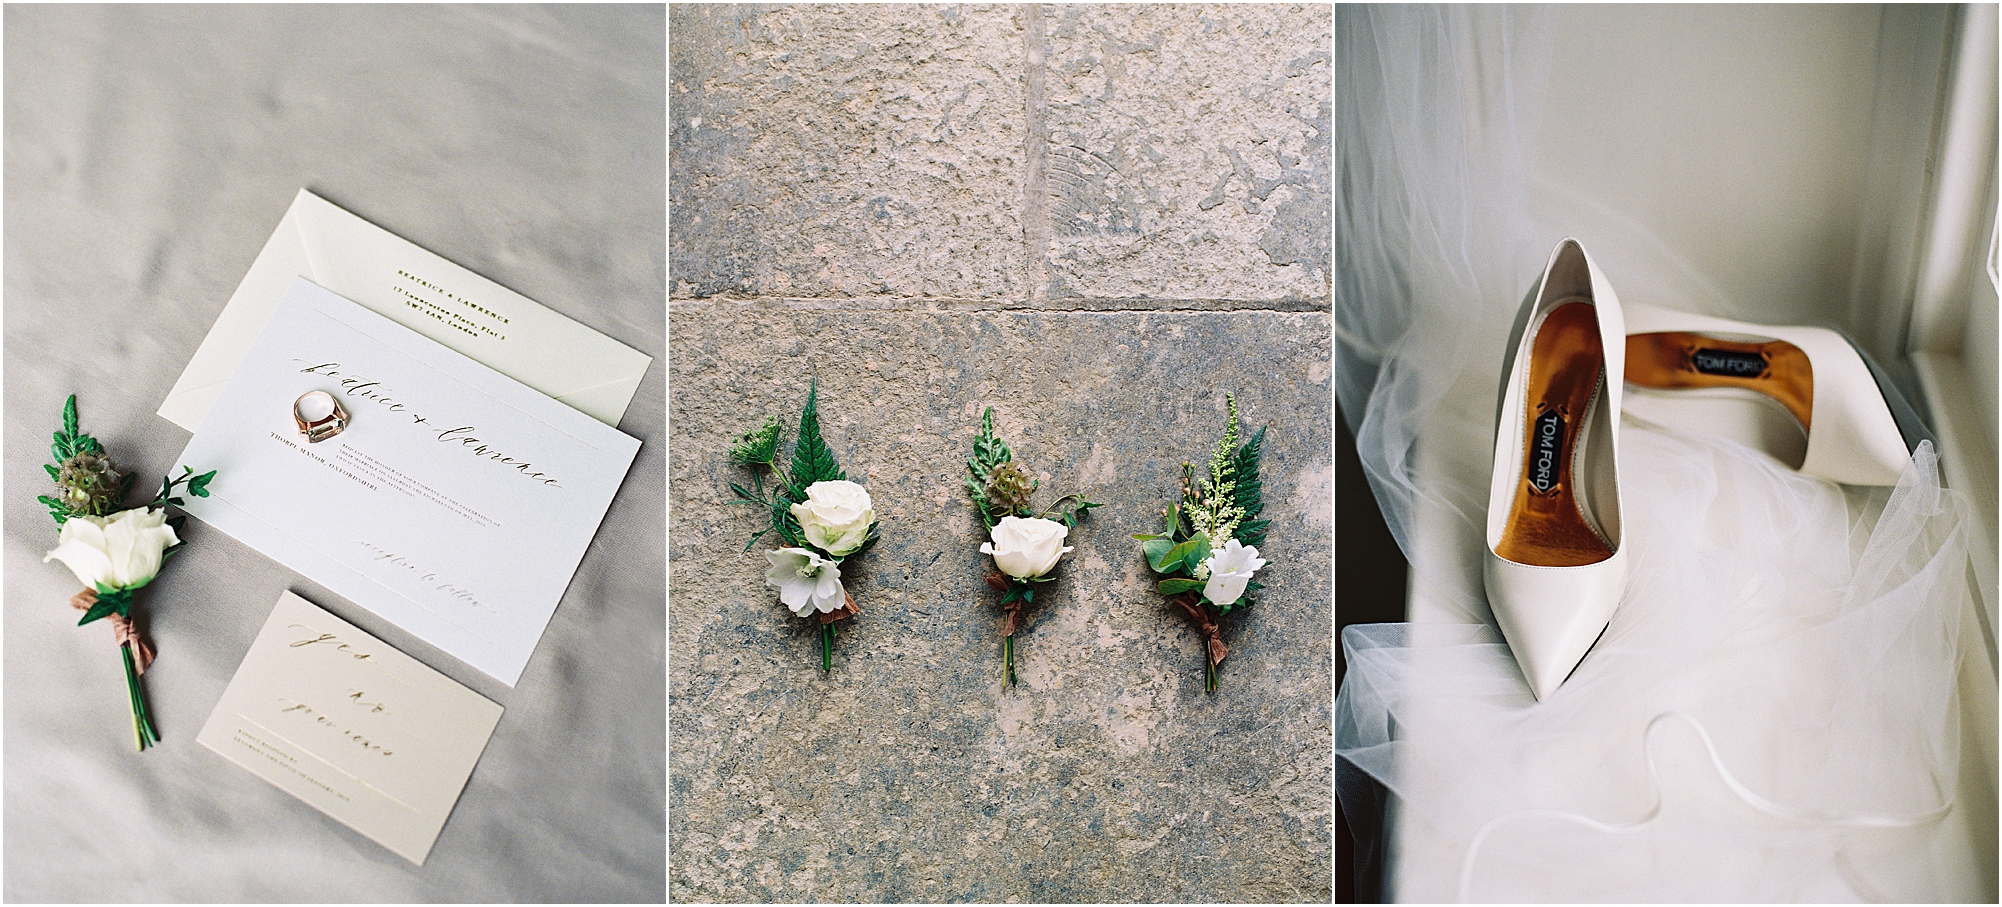 Luxury wedding button holes, Tom Ford bridal shoes and wedding stationery